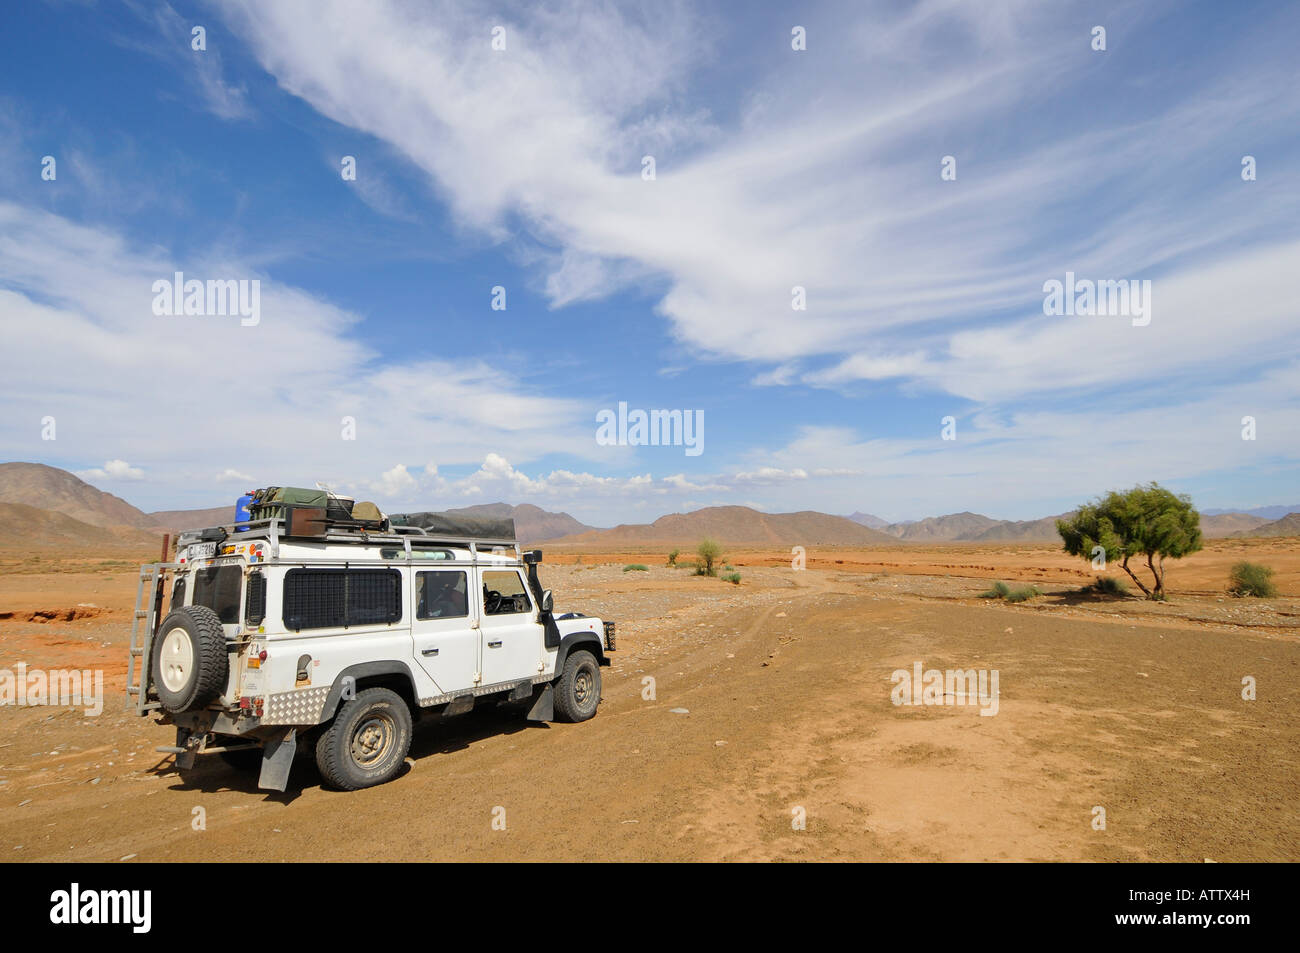 Ai Ais Richtersveld Transfrontier National Park at dried out river bed with Nama Land Rover - Stock Image